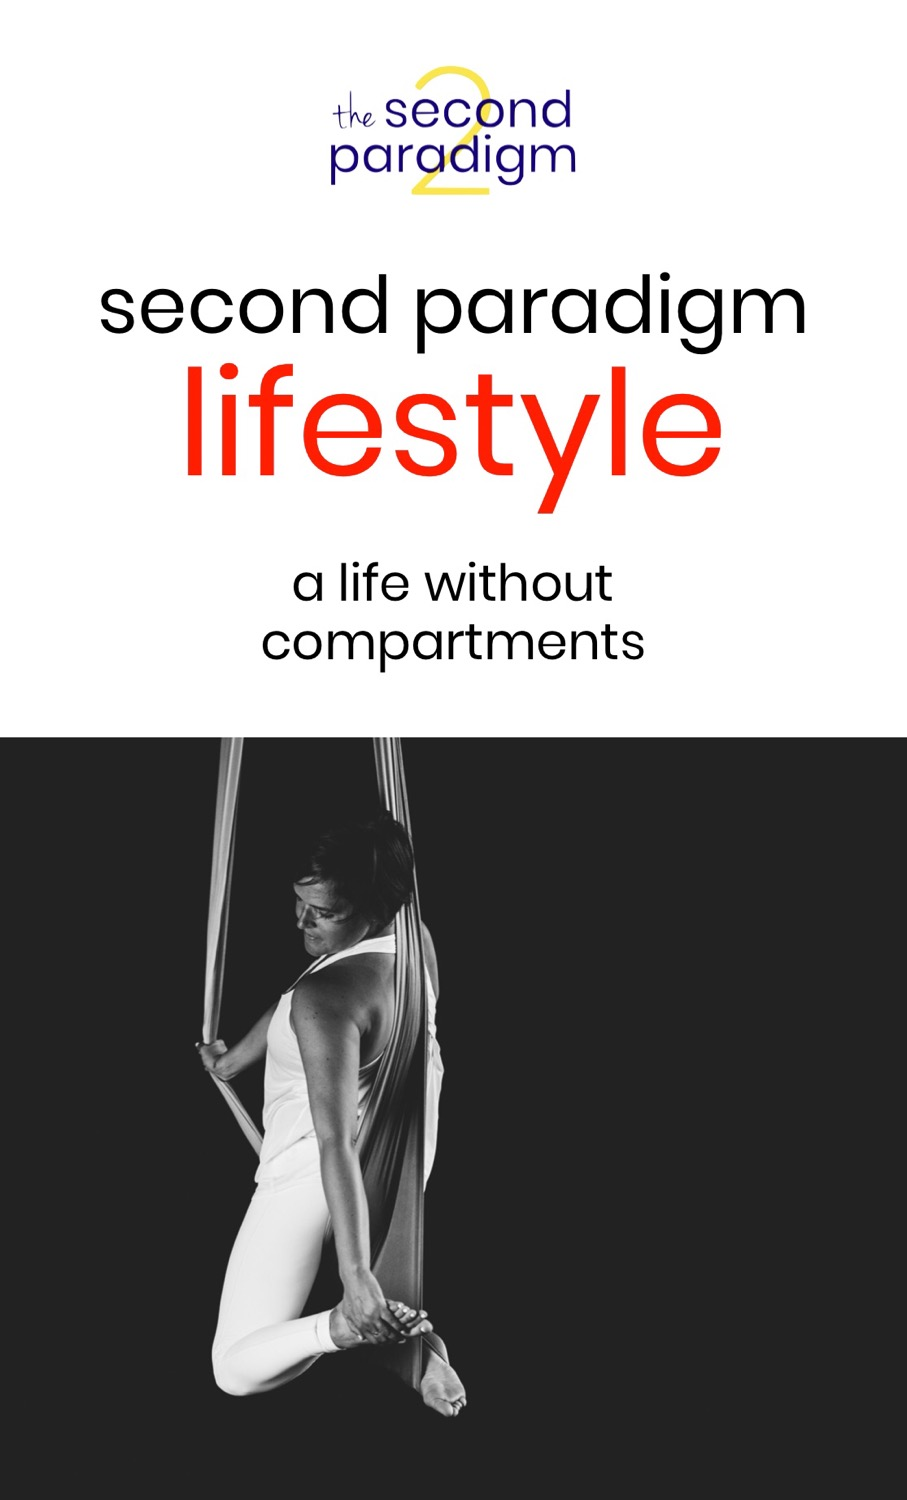 Second Paradigm Lifestyle